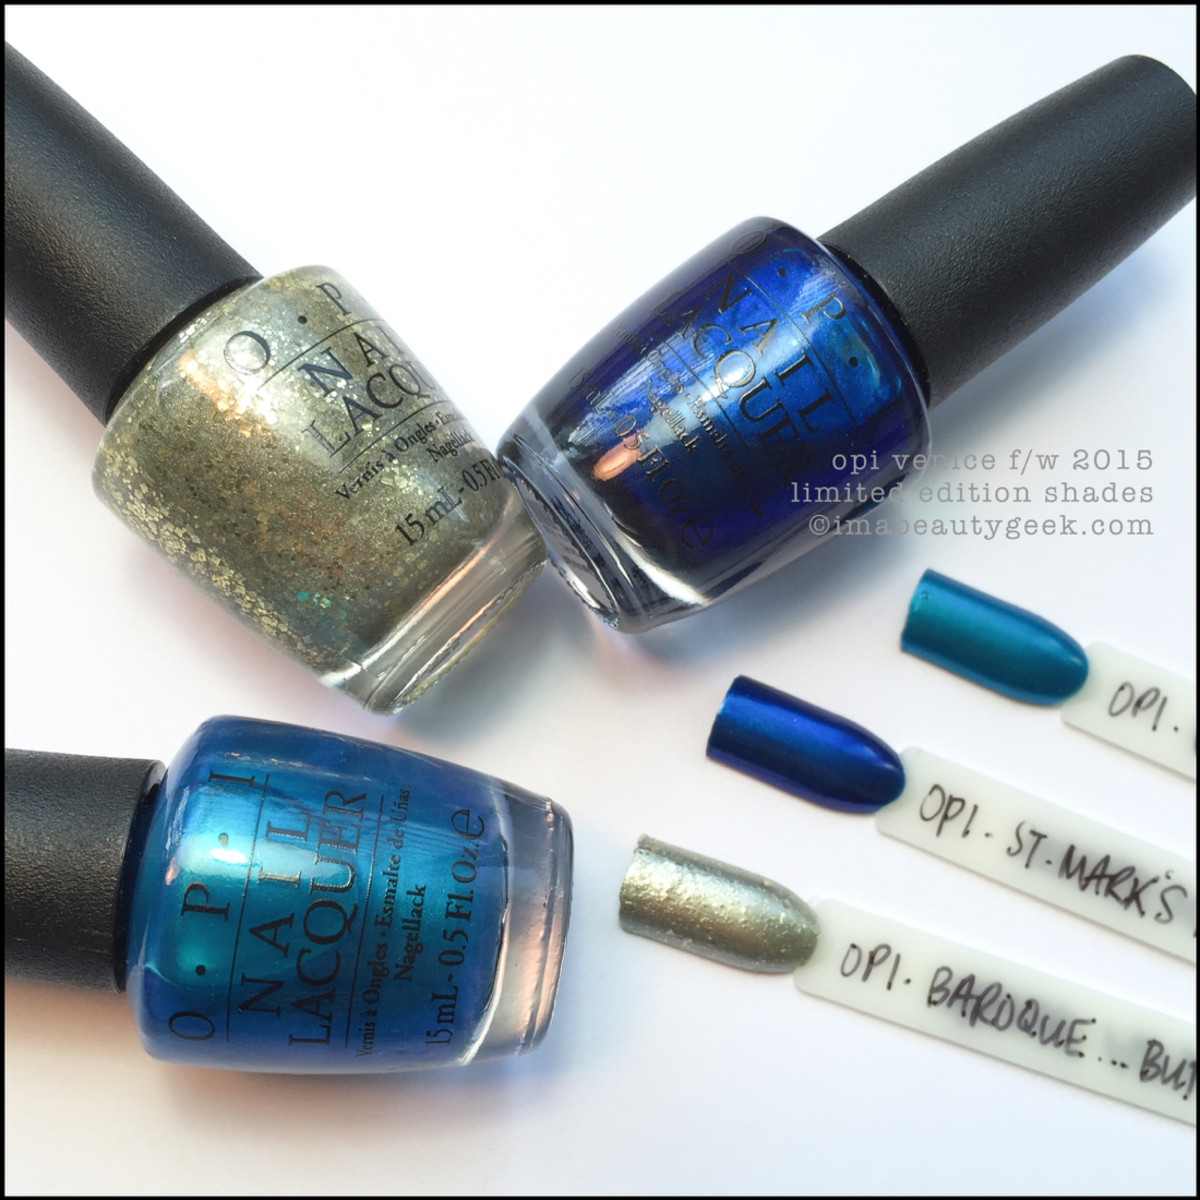 OPI Venice Collection Limited Edition Shade Swatches and Comparisons